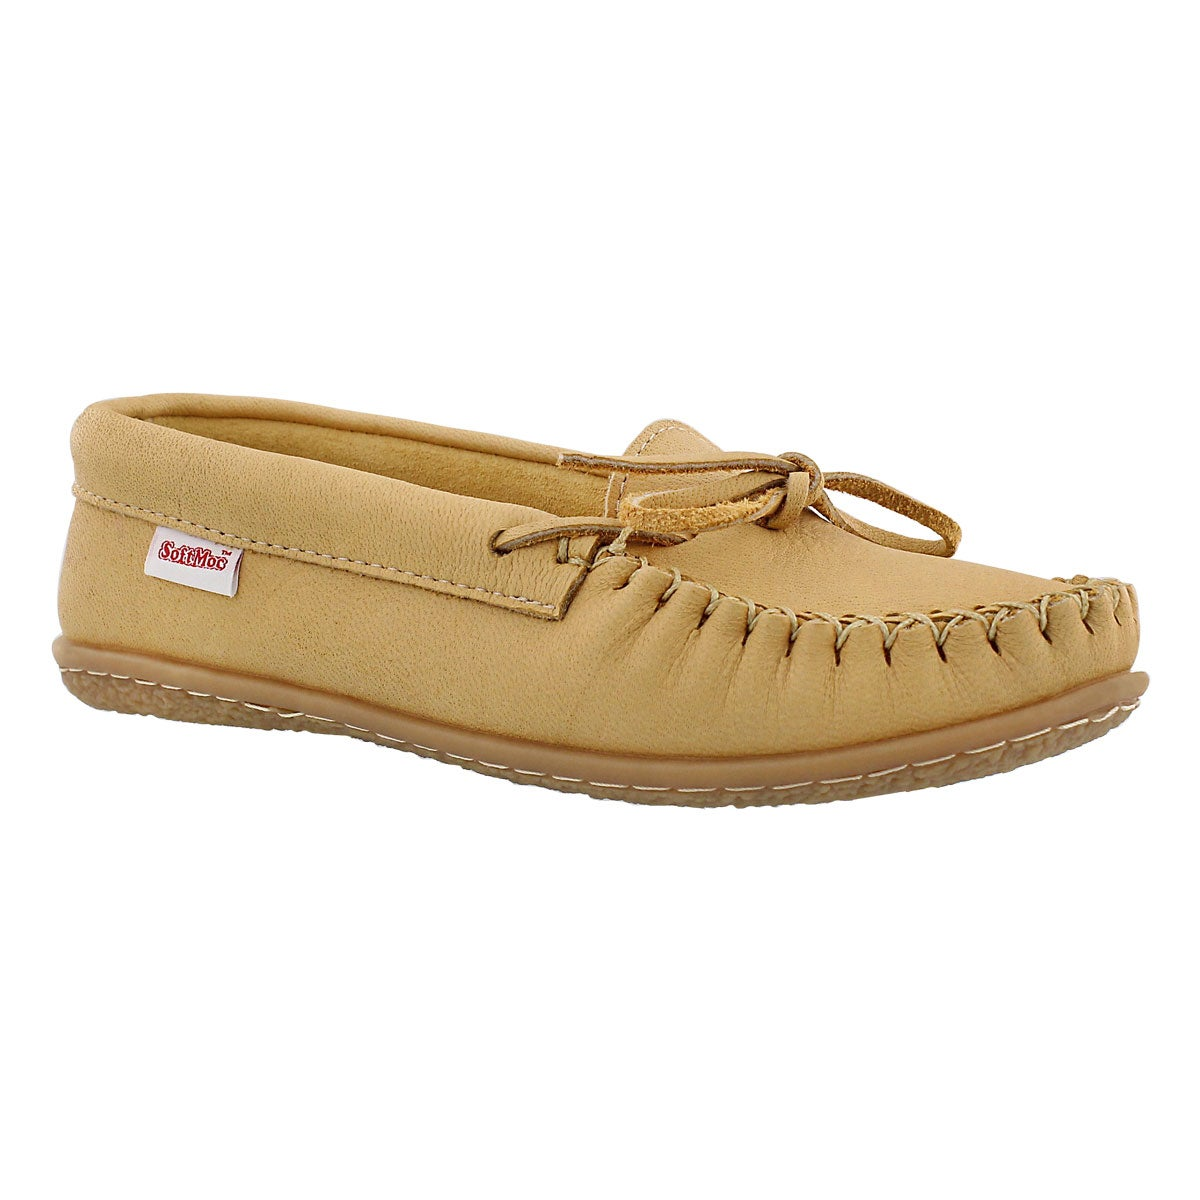 Women's SYLVIE moose unlined moccasins